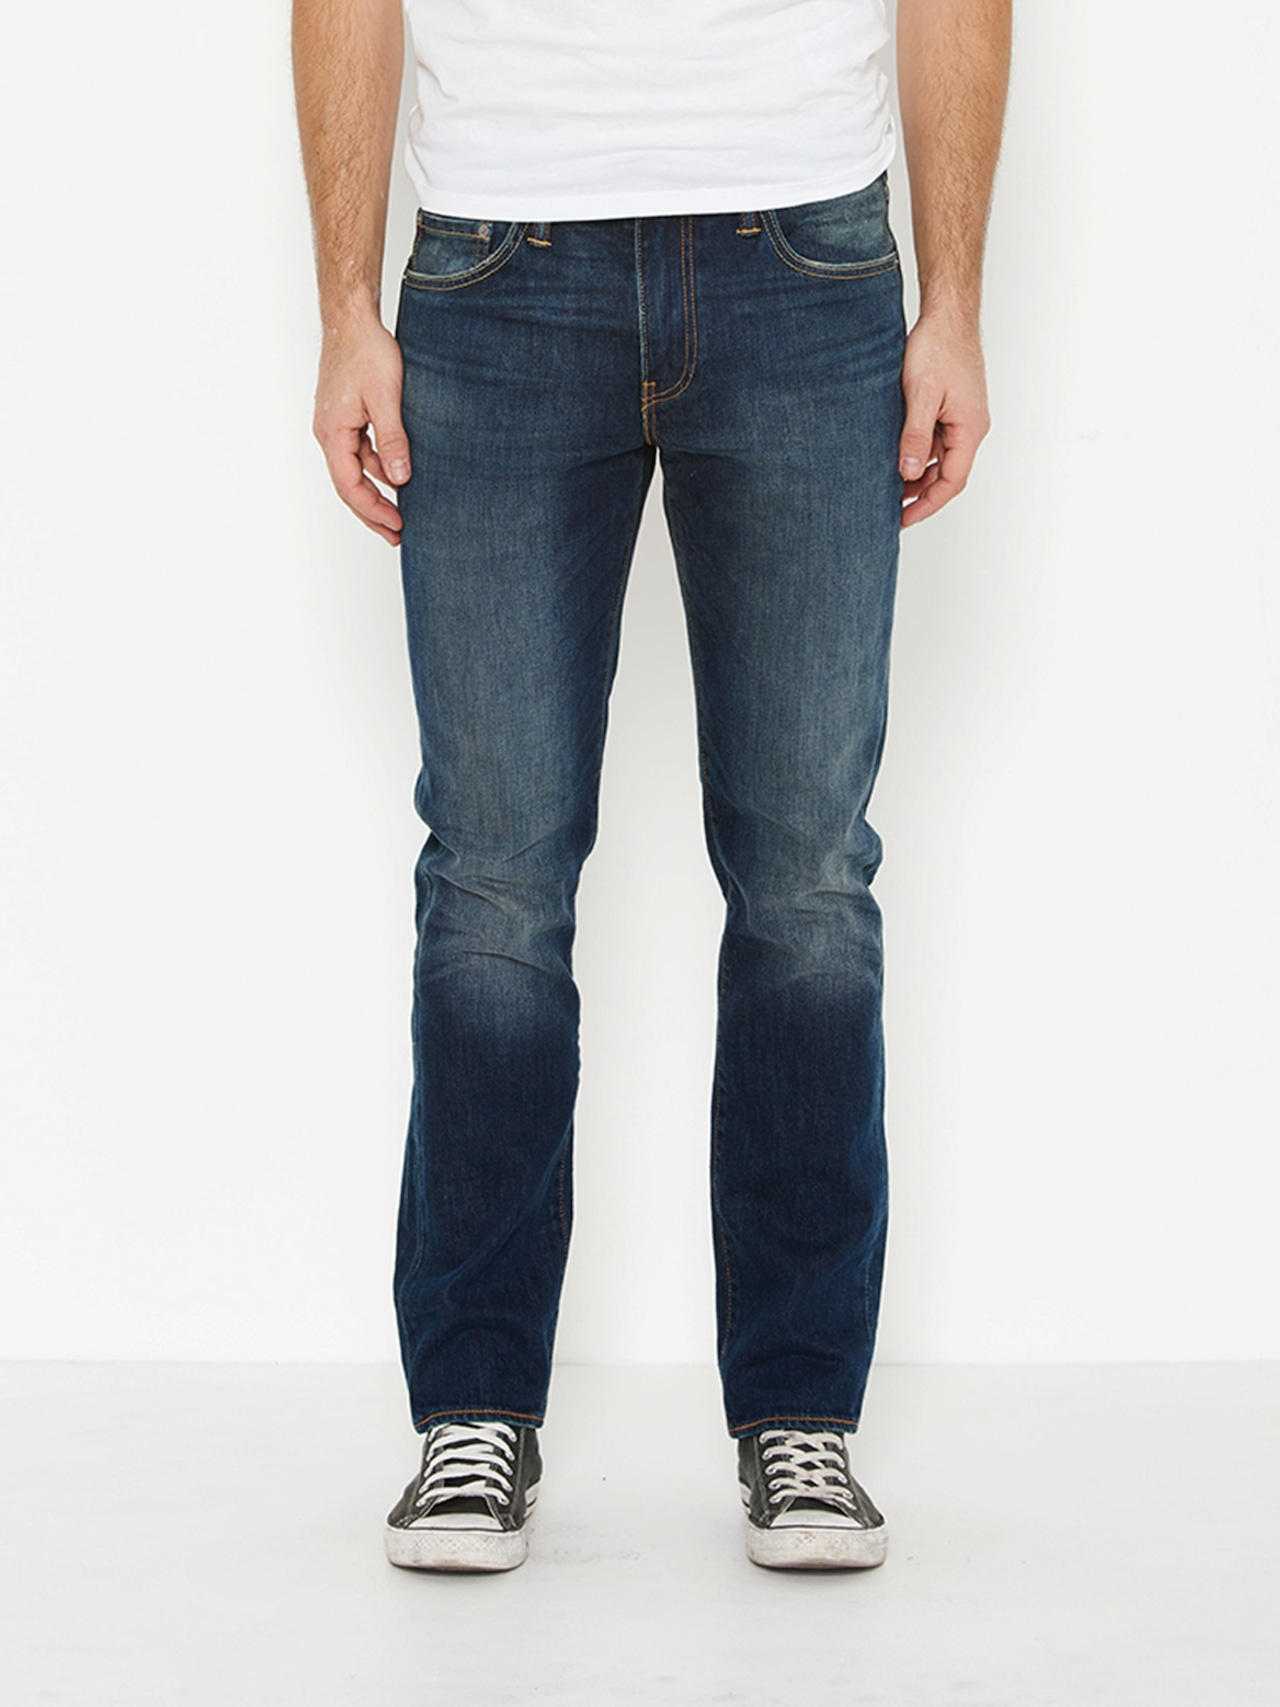 897c950725fdcb Levi's 511 Slim In Blue Canyon Dark - Just Jeans Online